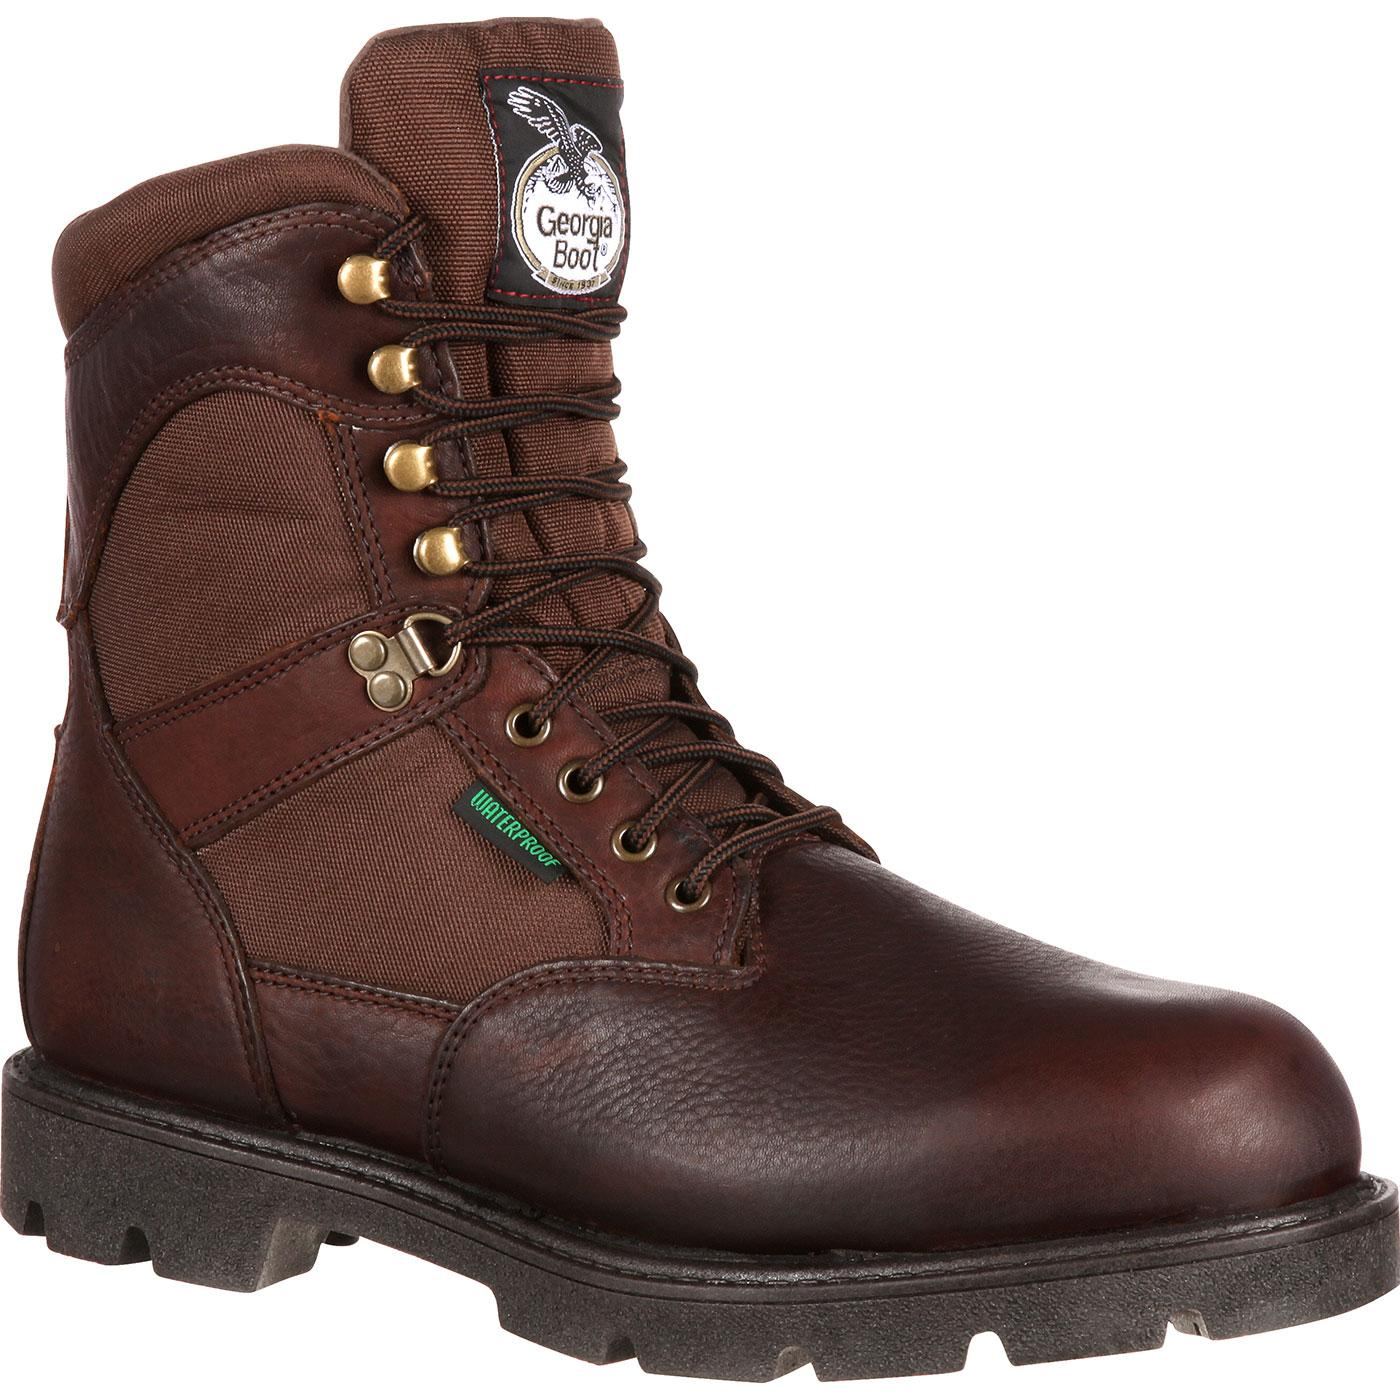 Georgia Homeland Steel Toe Waterproof Insulated Boot, #G110